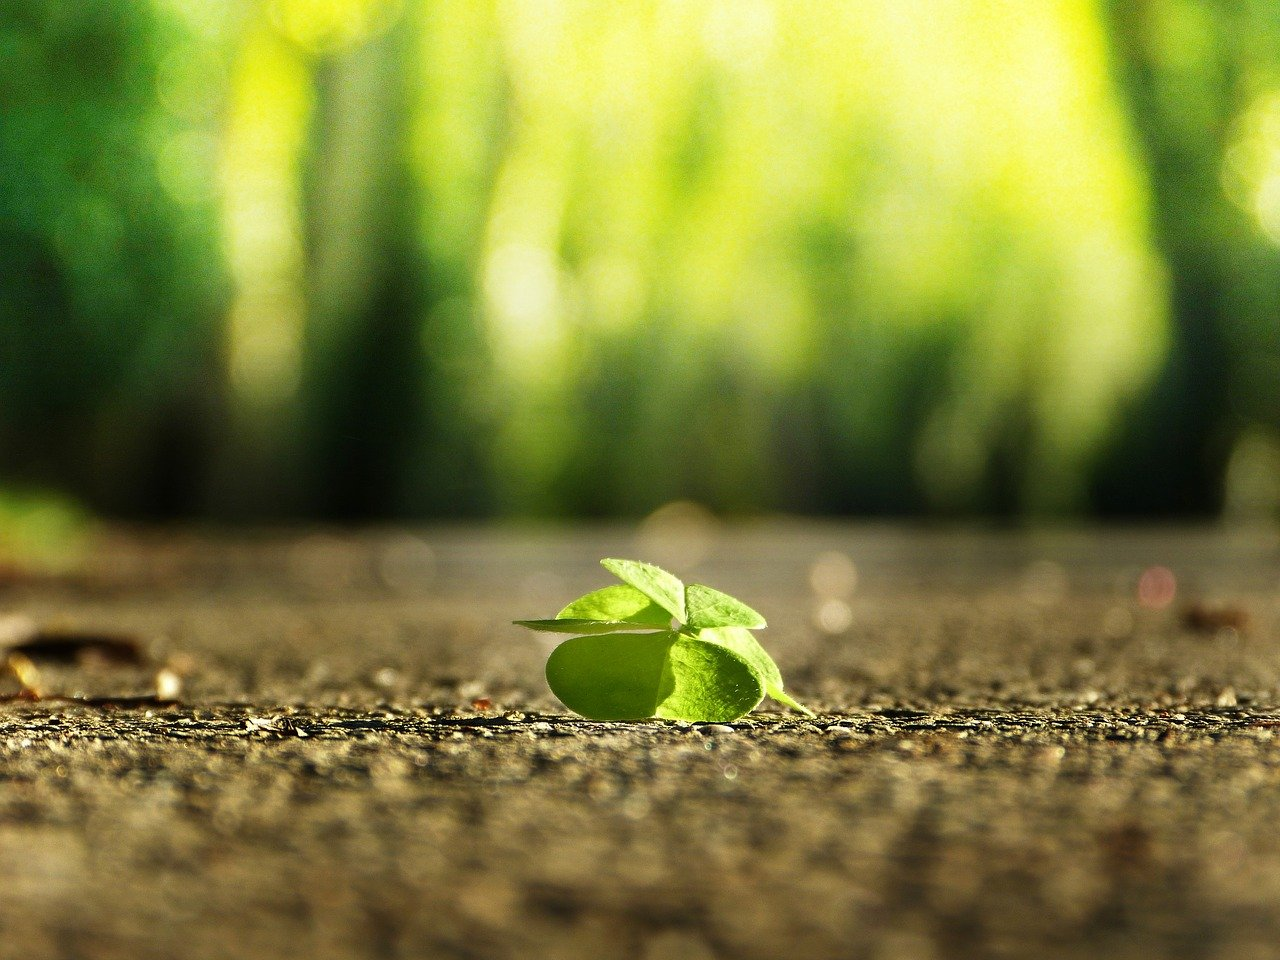 clover on the ground